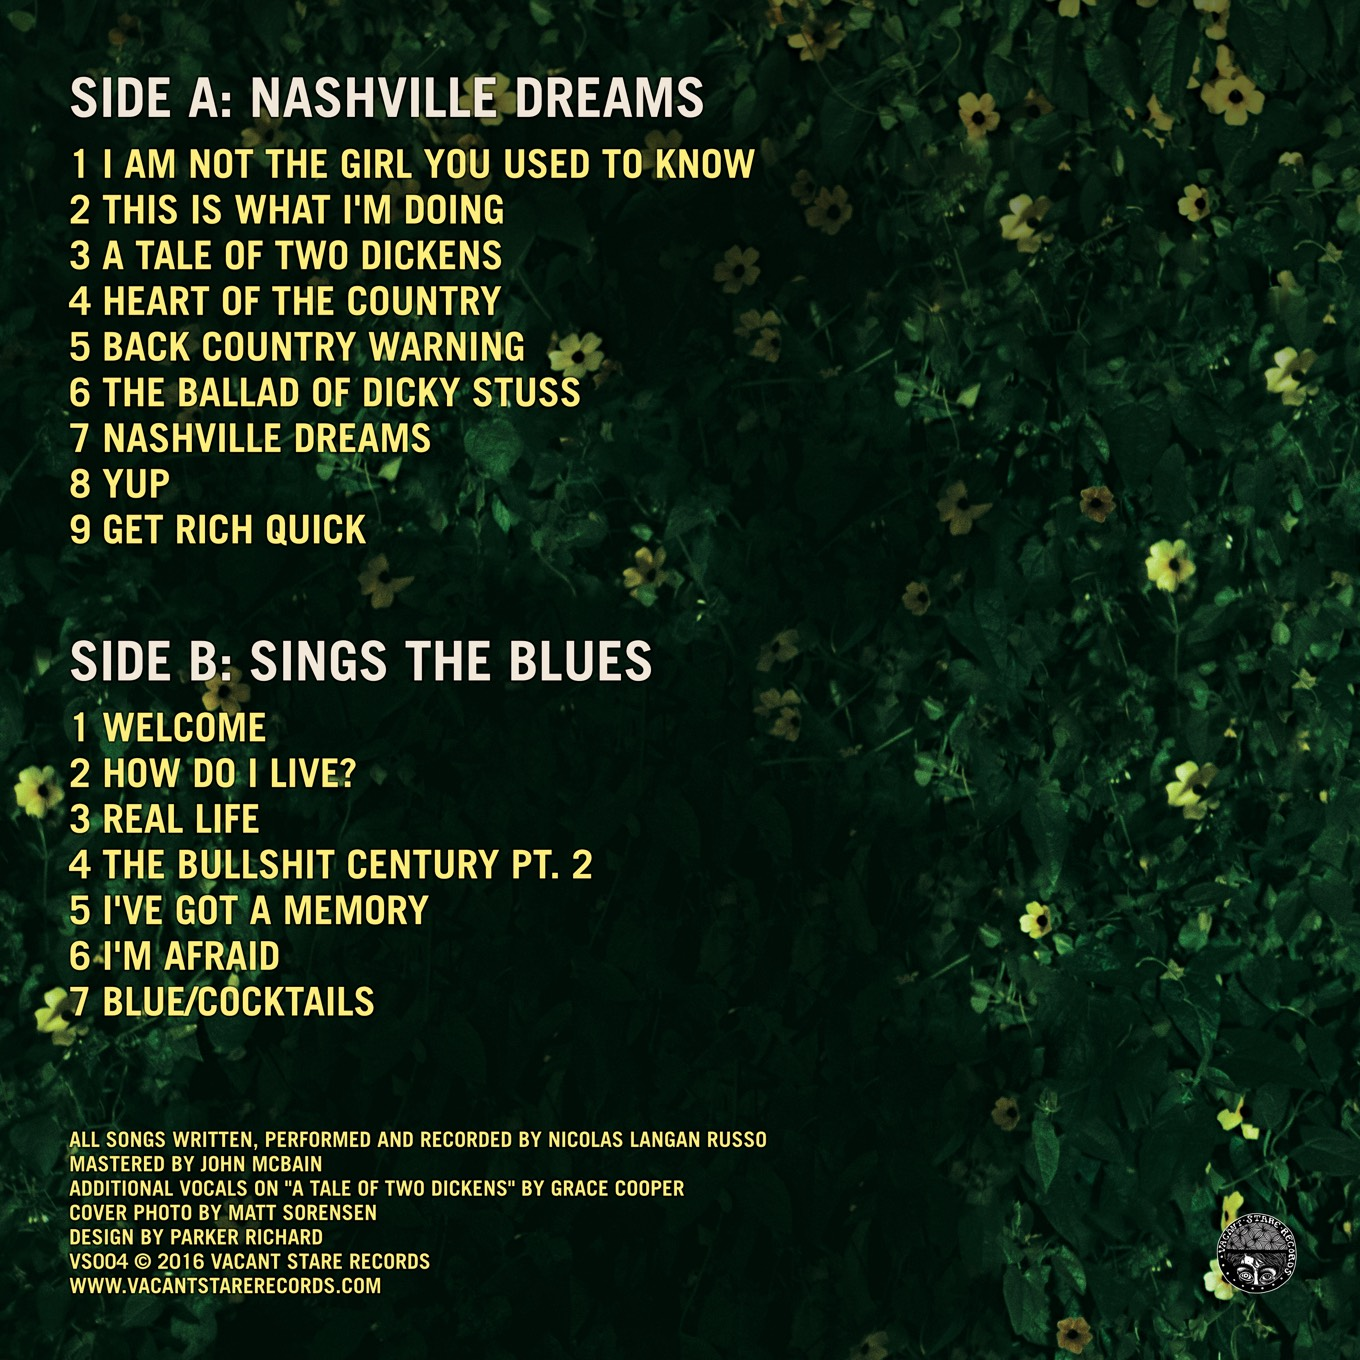 Reverse of Dick Stusso Nashville Dreams/Sings the Blues album jacket design